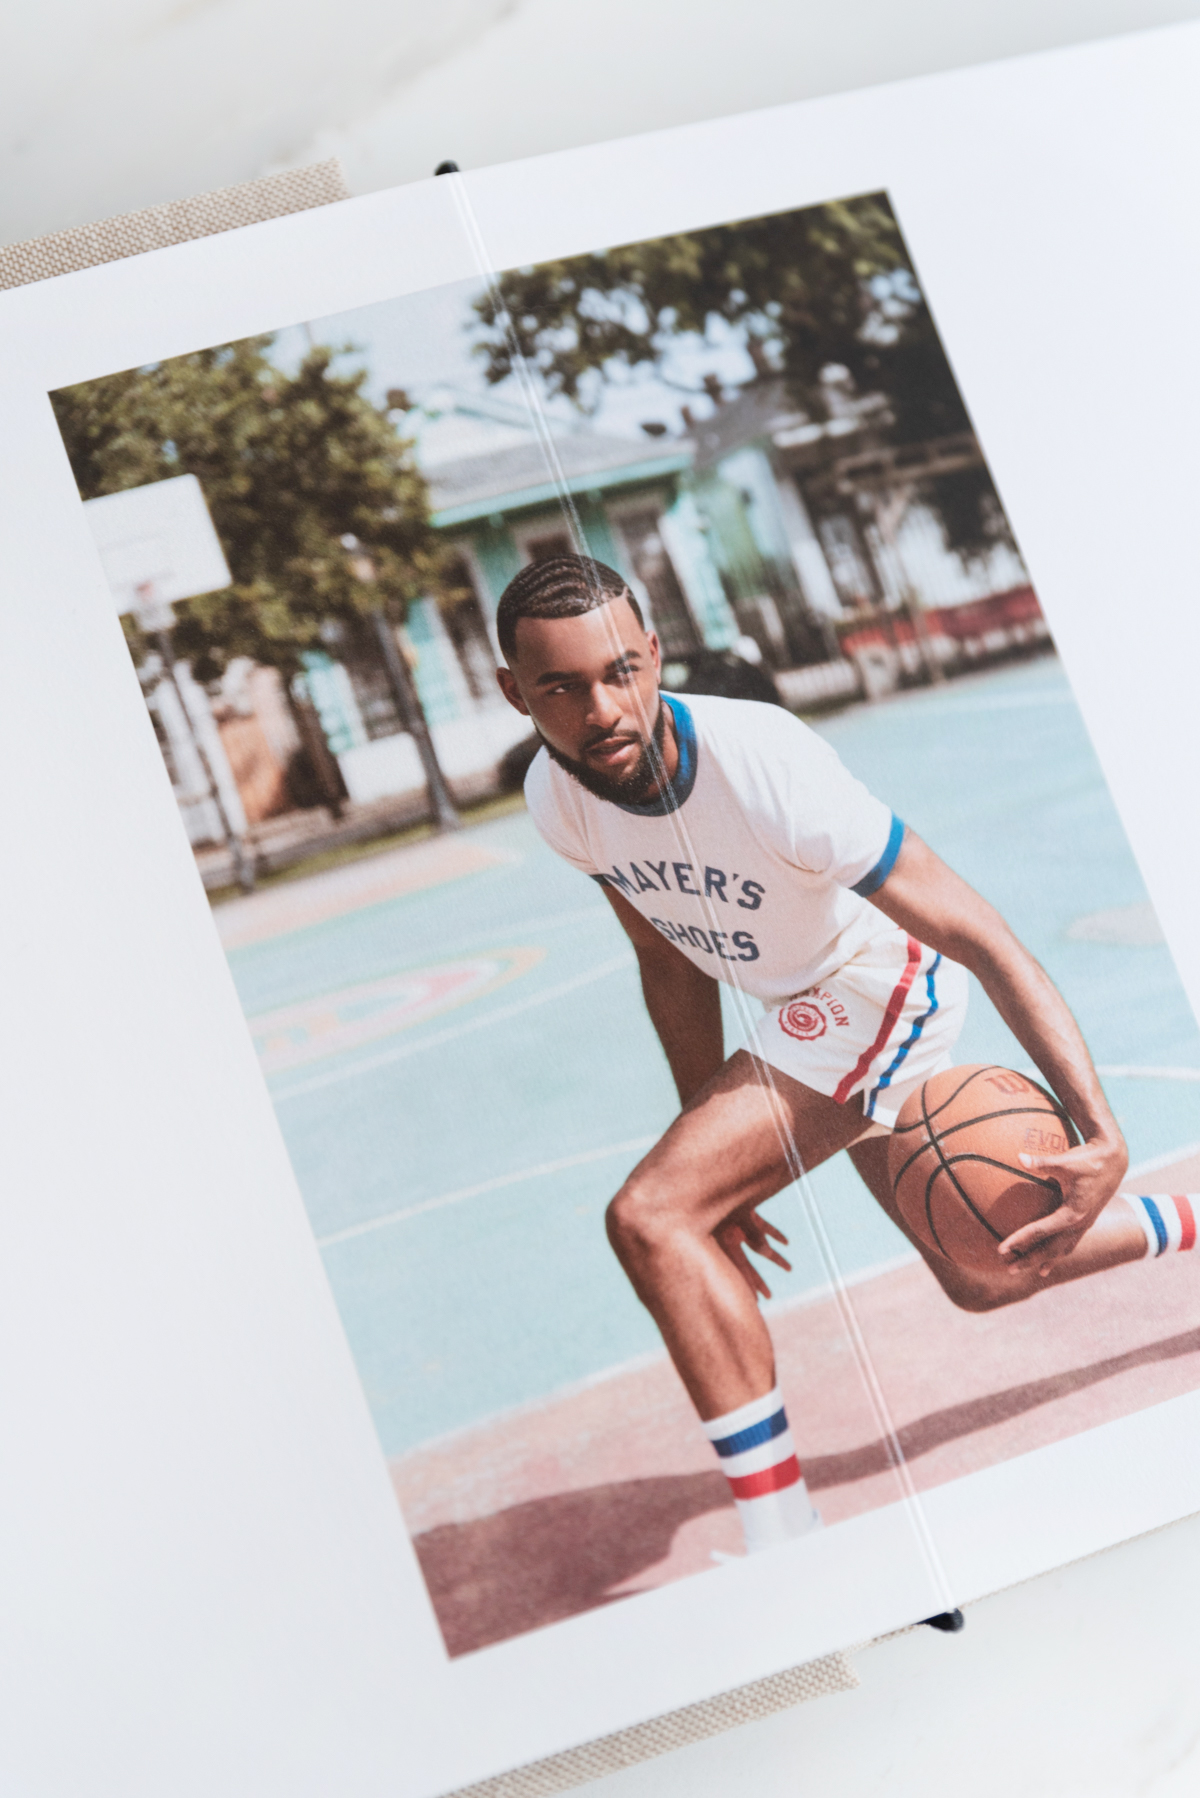 Artifact Uprising Layflat Photo Portfolio Book opened to mid-motion portrait of young man dribbling basketball between his legs